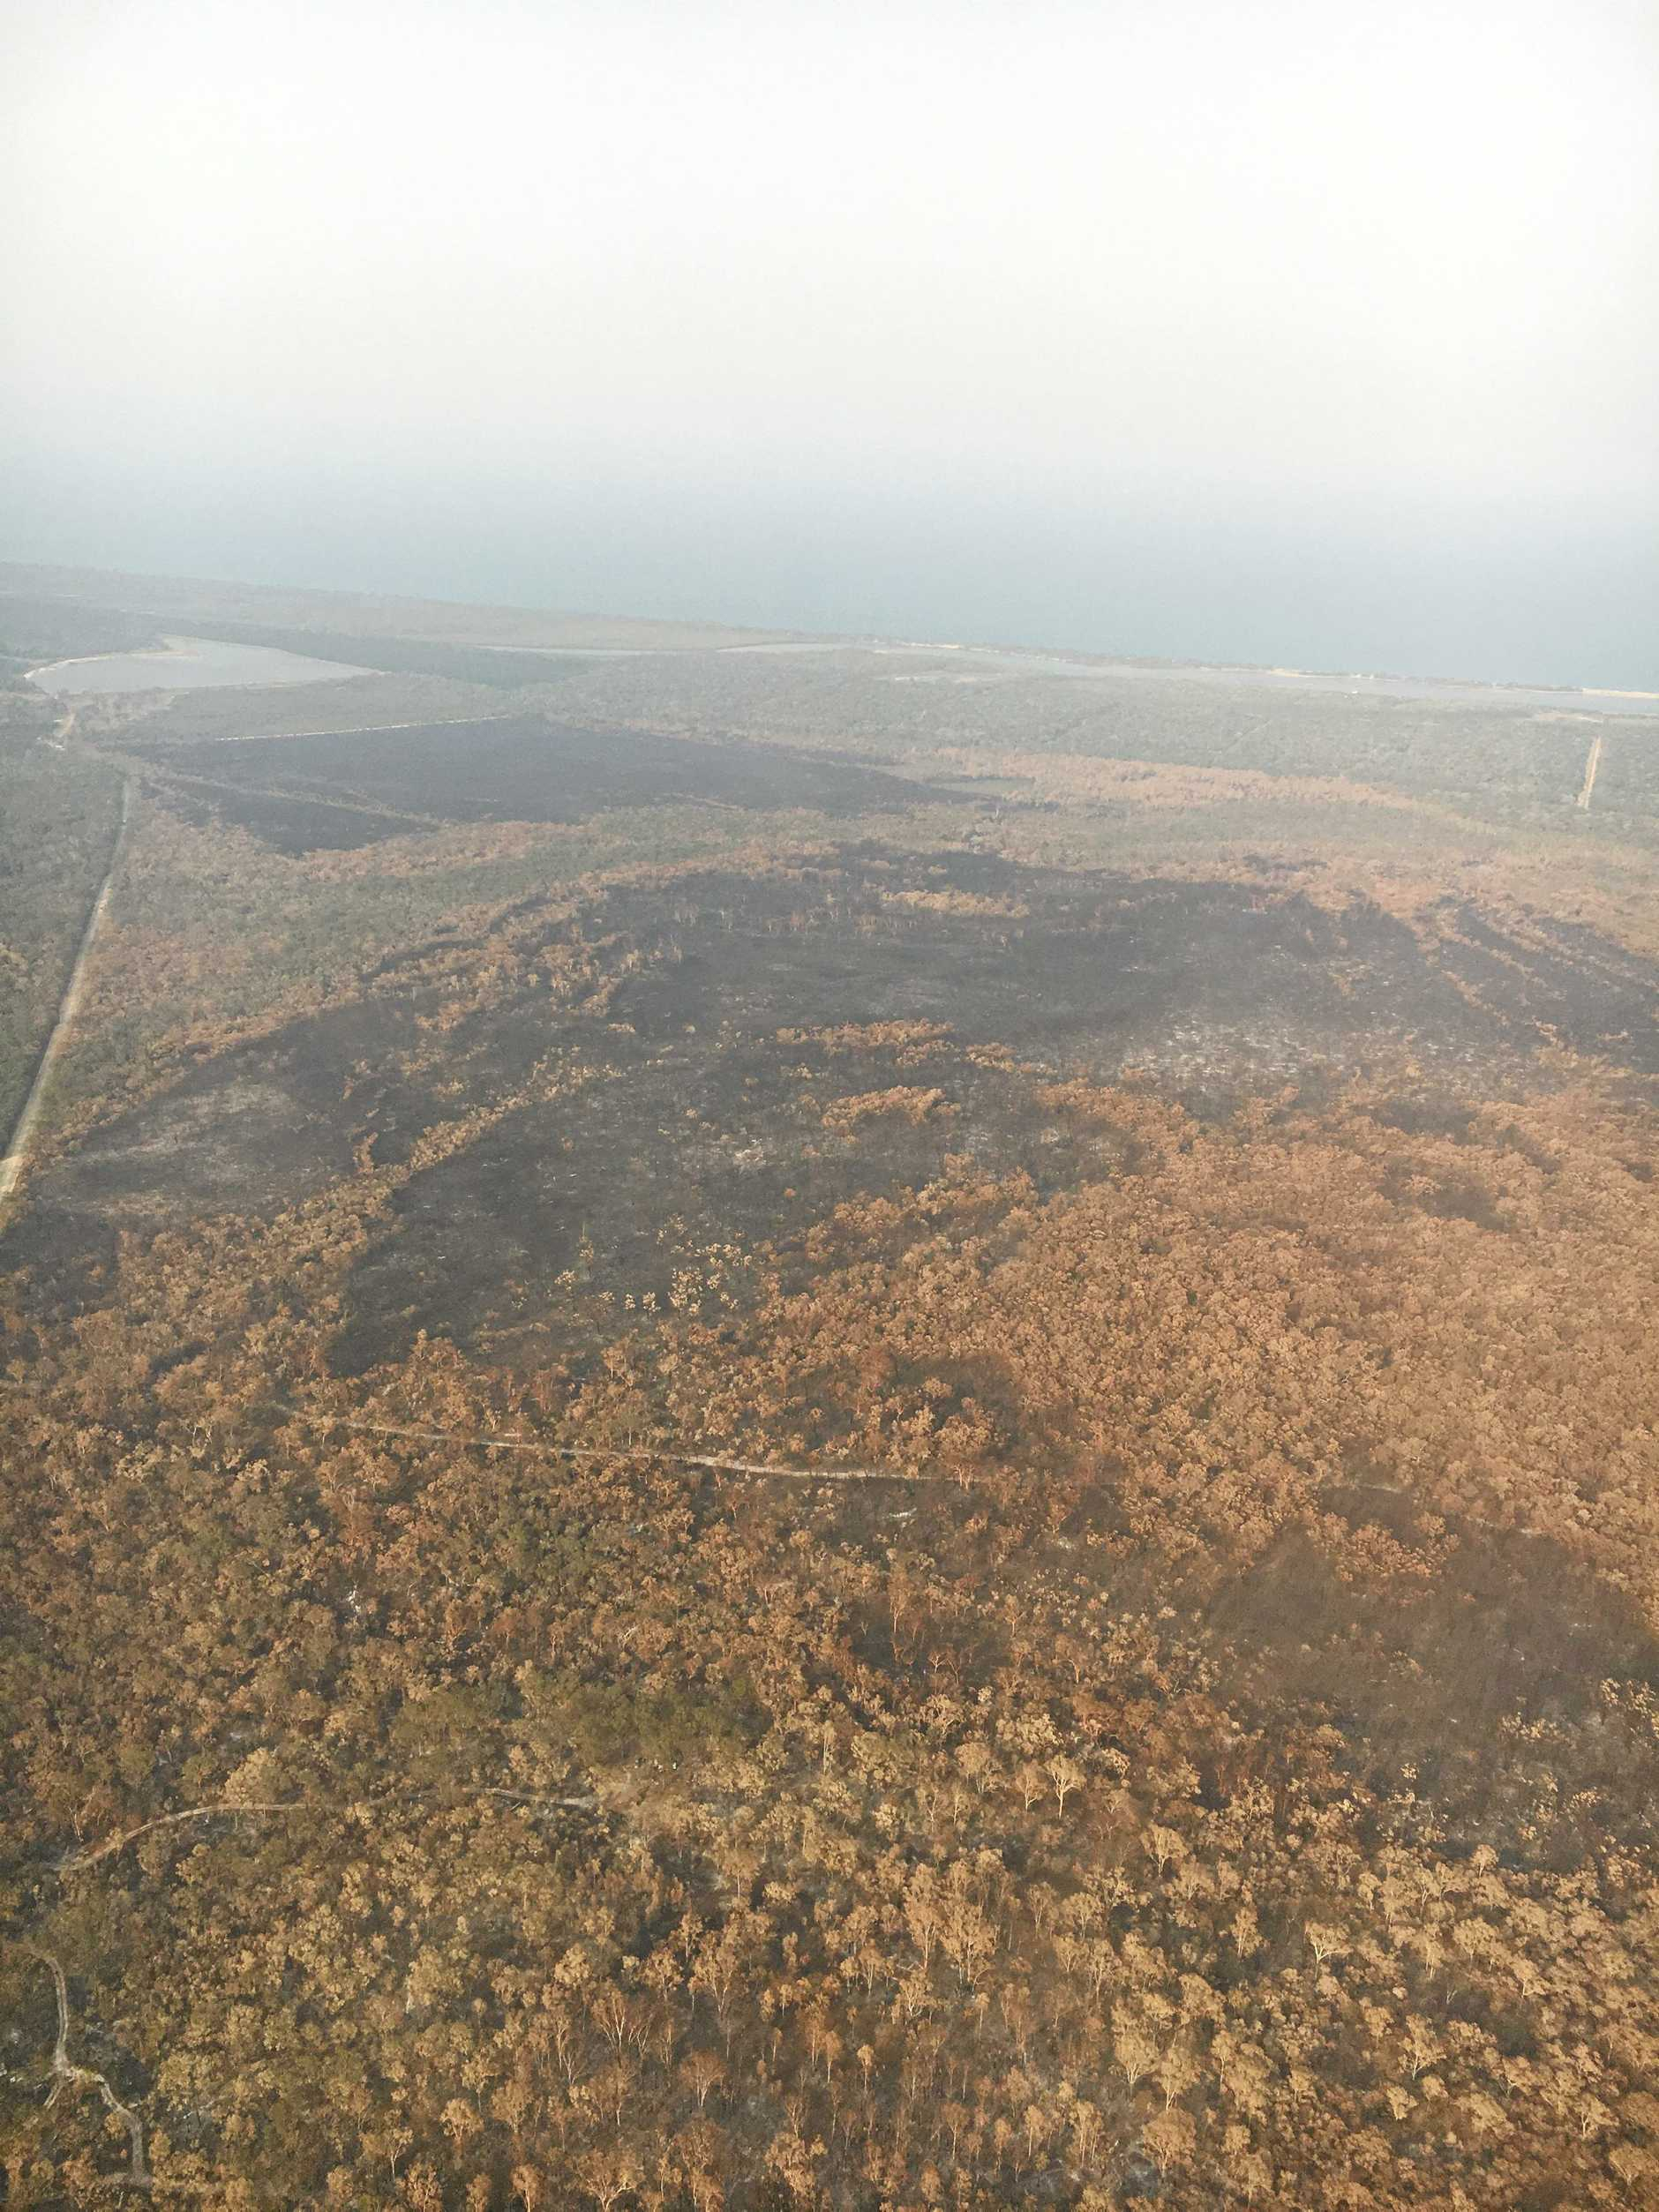 Gladstone Regional Council mayor Matt Burnett took photos of the Deepwater area while inspecting the bushfire zone on Monday. Pictured is Deepwater looking east toward Broadwater Conservation Park.